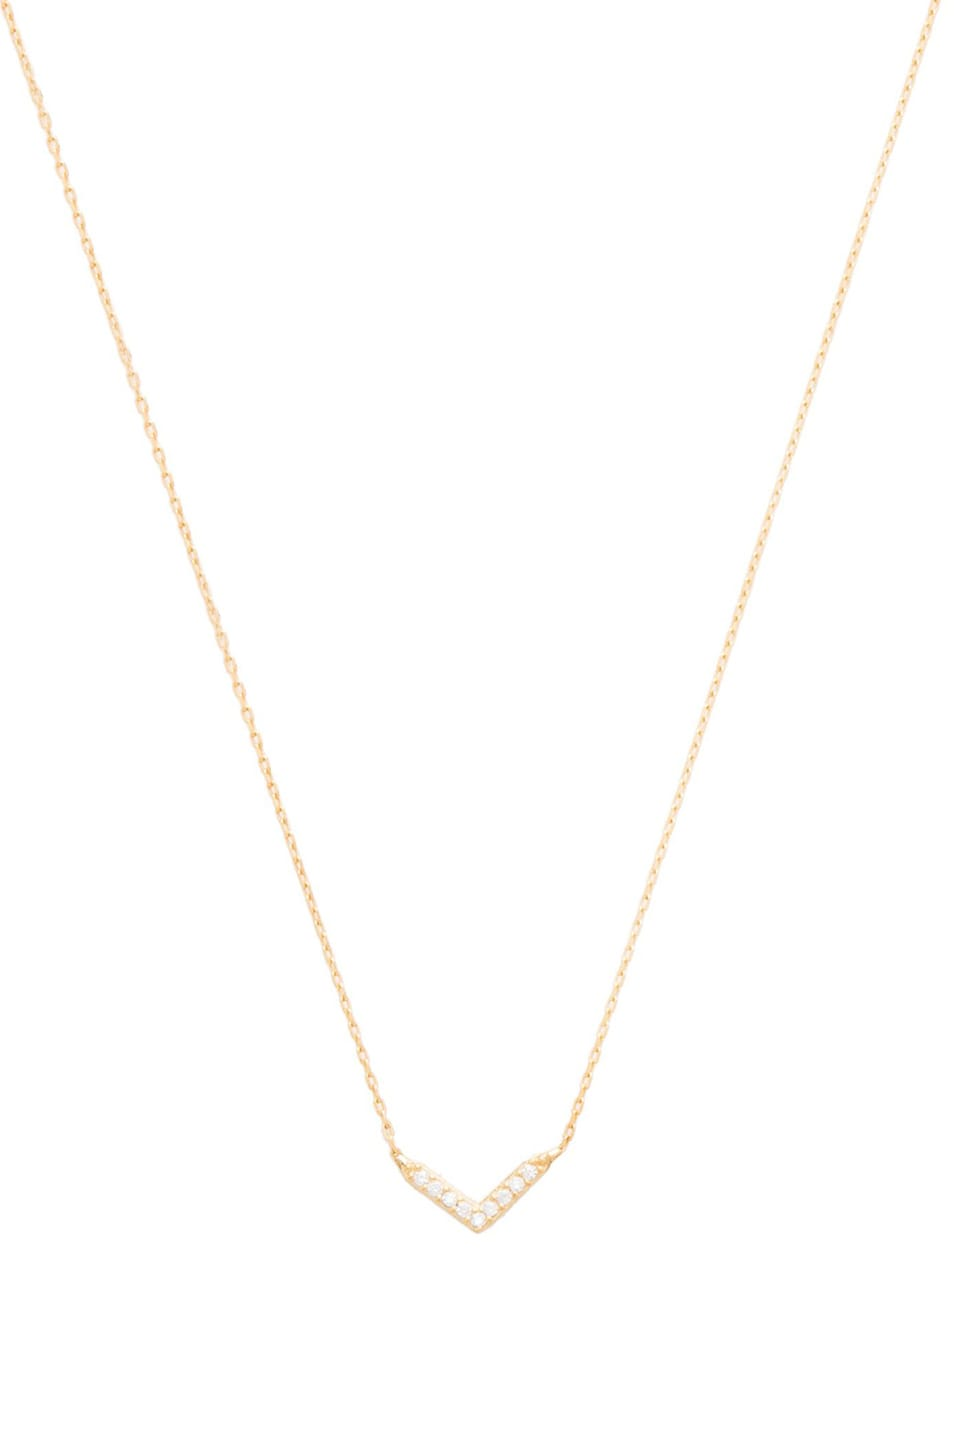 Natalie B Jewelry Baby V Necklace in Gold